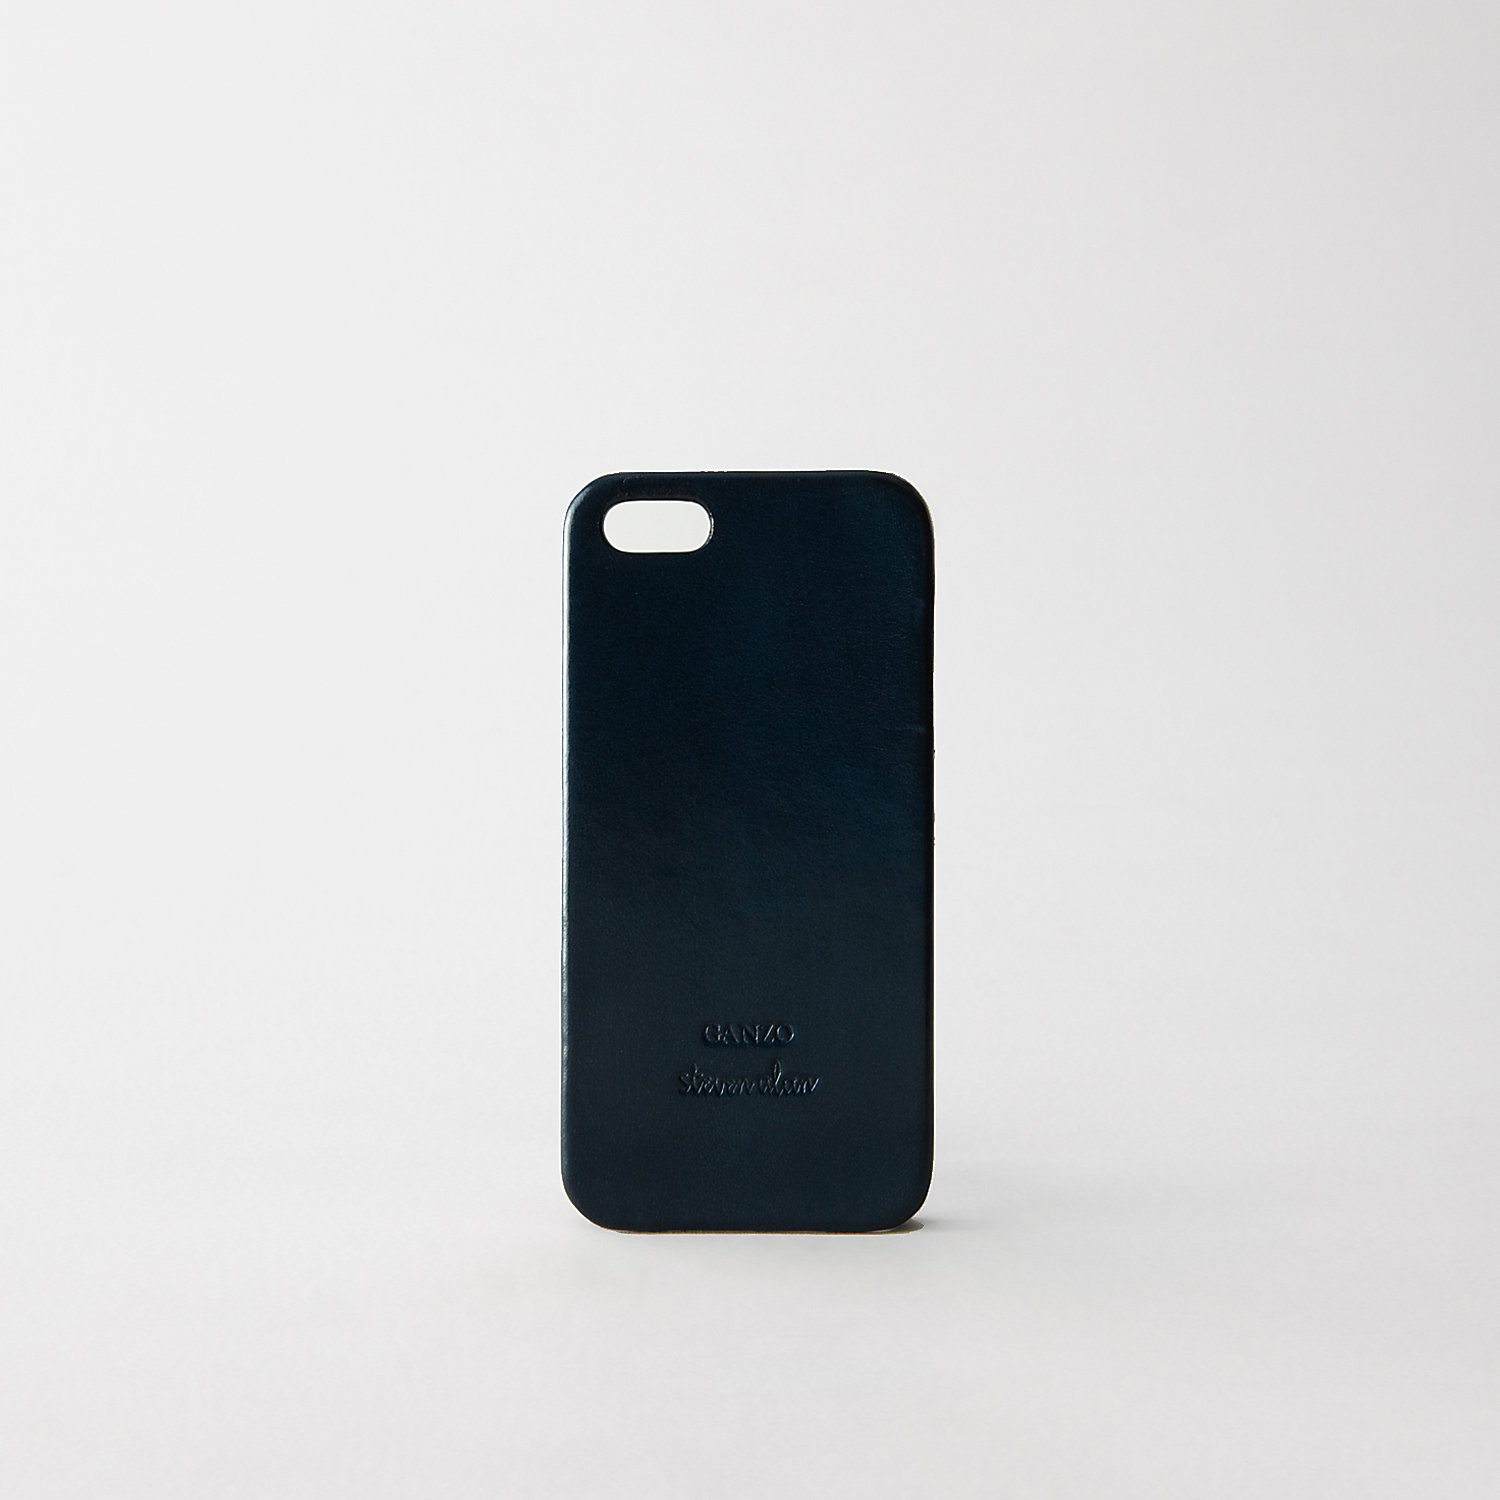 IPHONE 5 LEATHER CASE